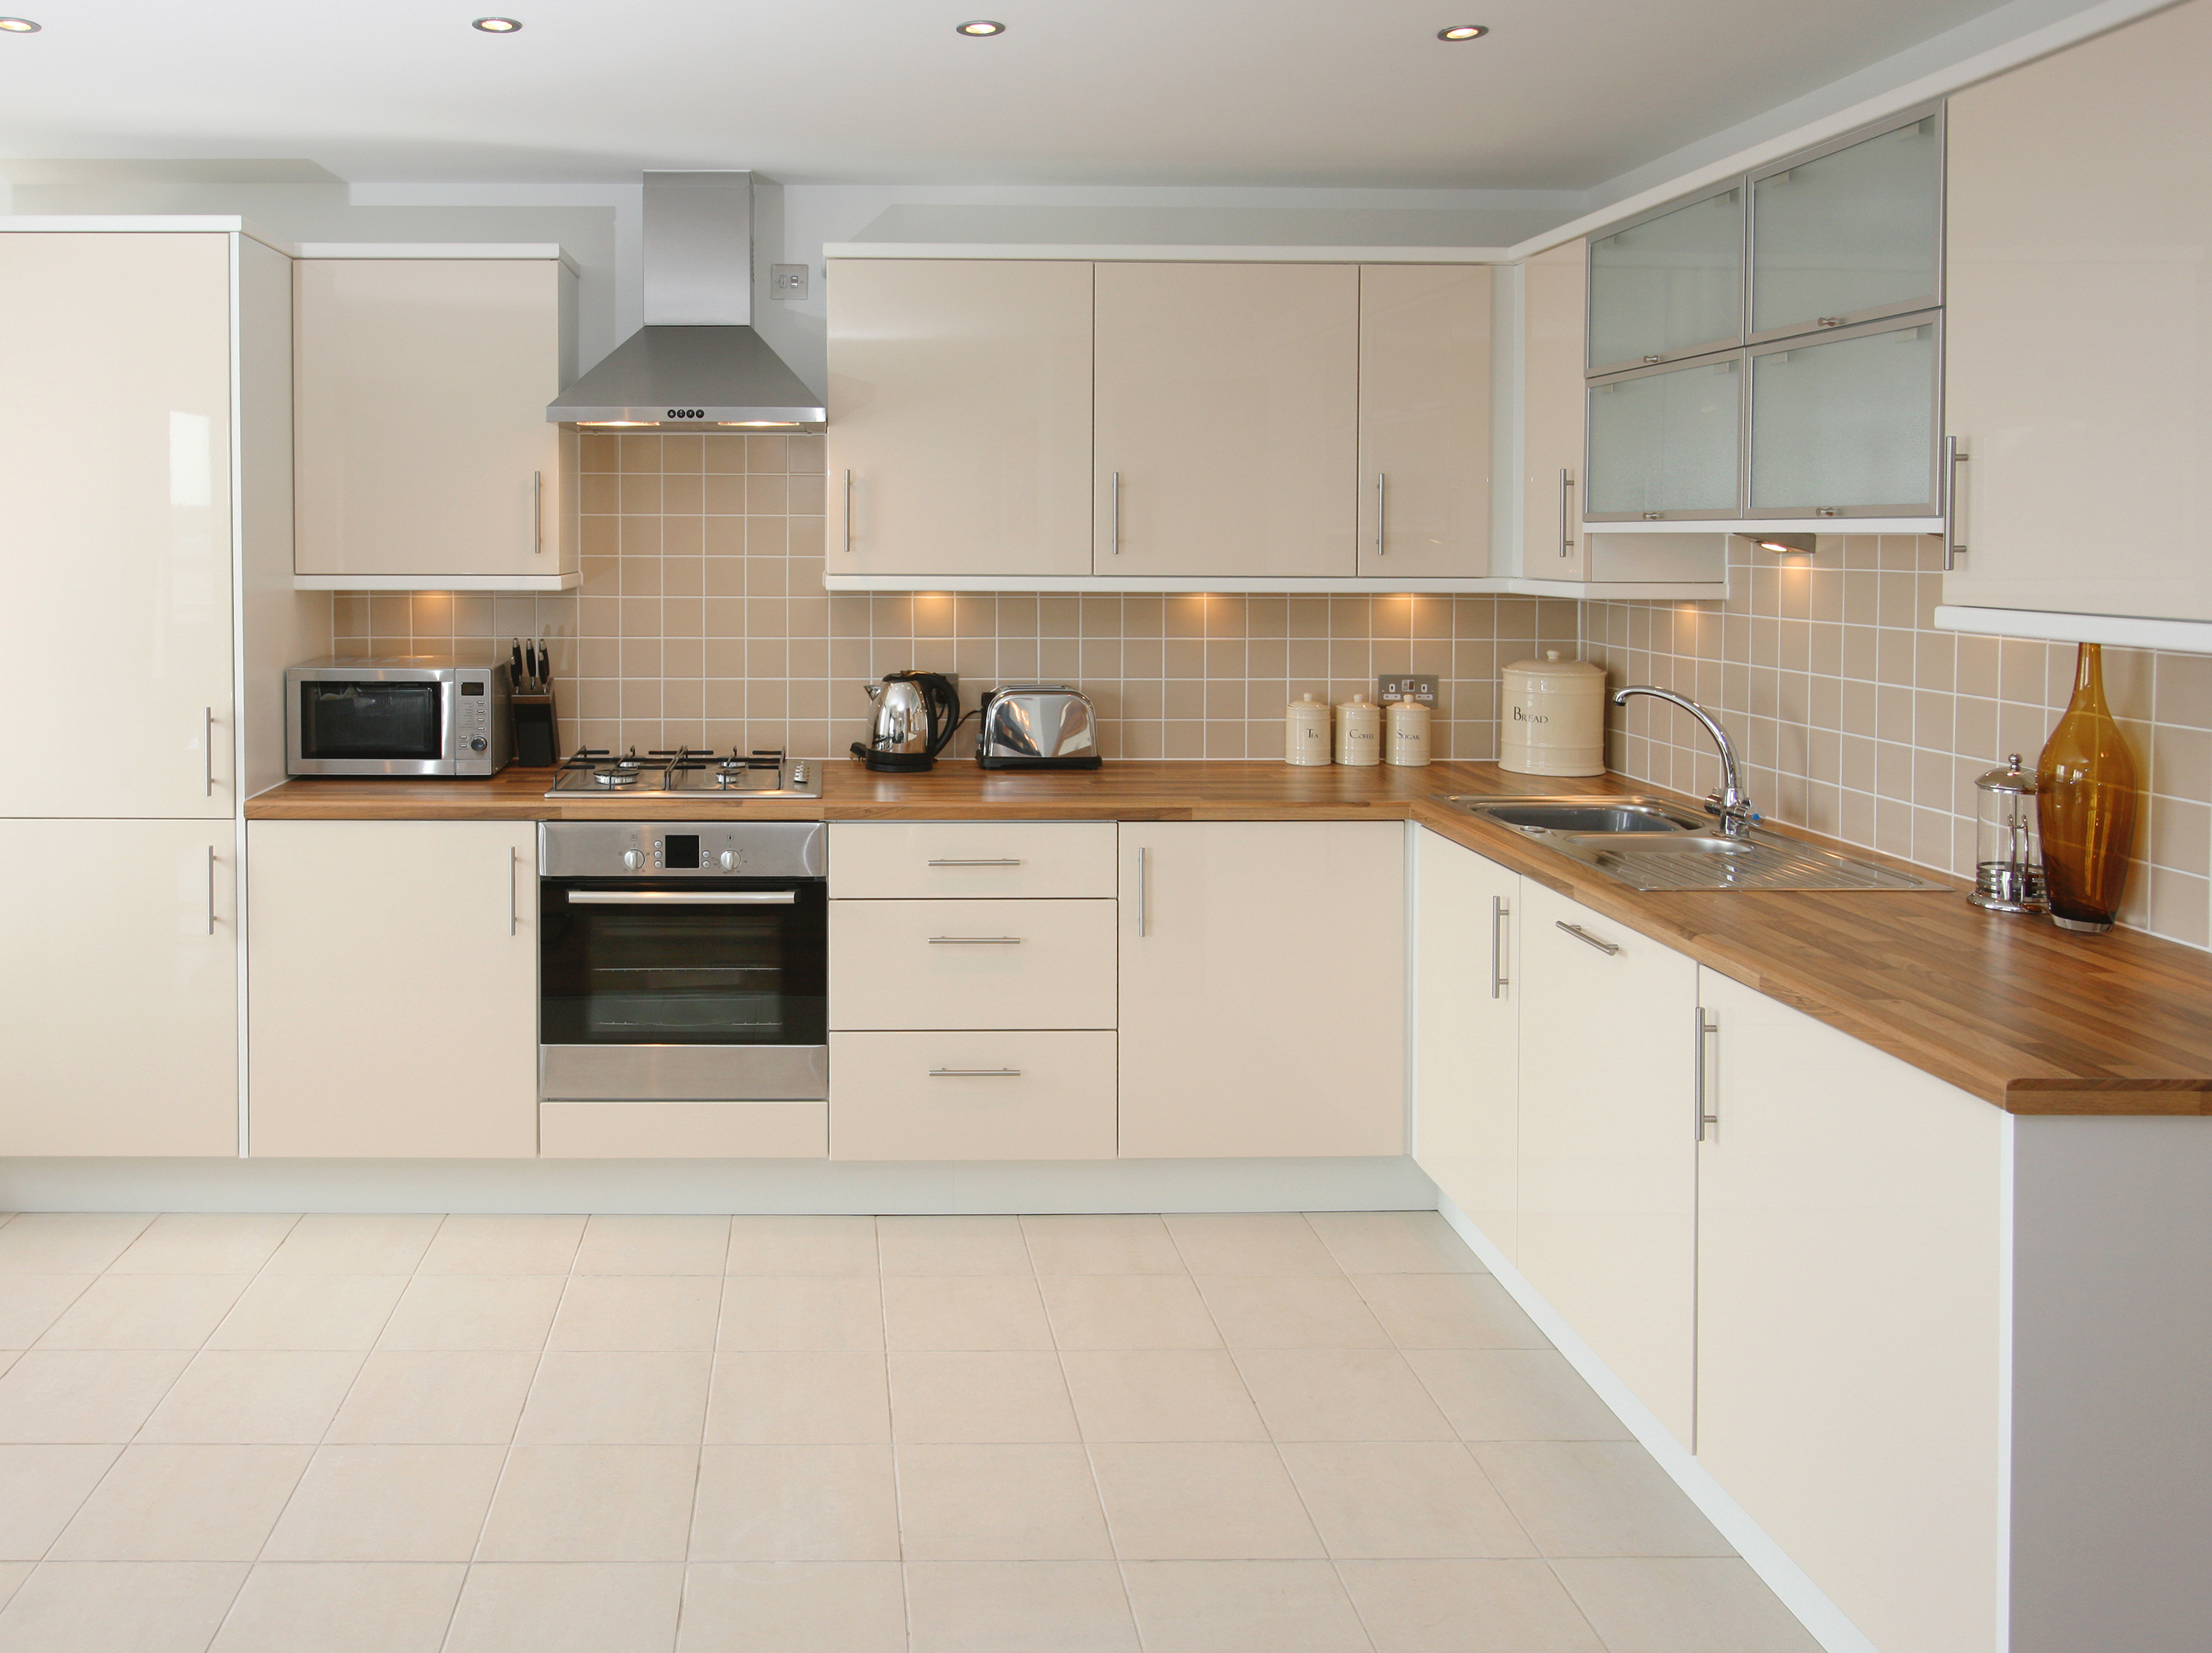 Porcelain vs. ceramic tiles: which is better? - Ideas by Mr Right